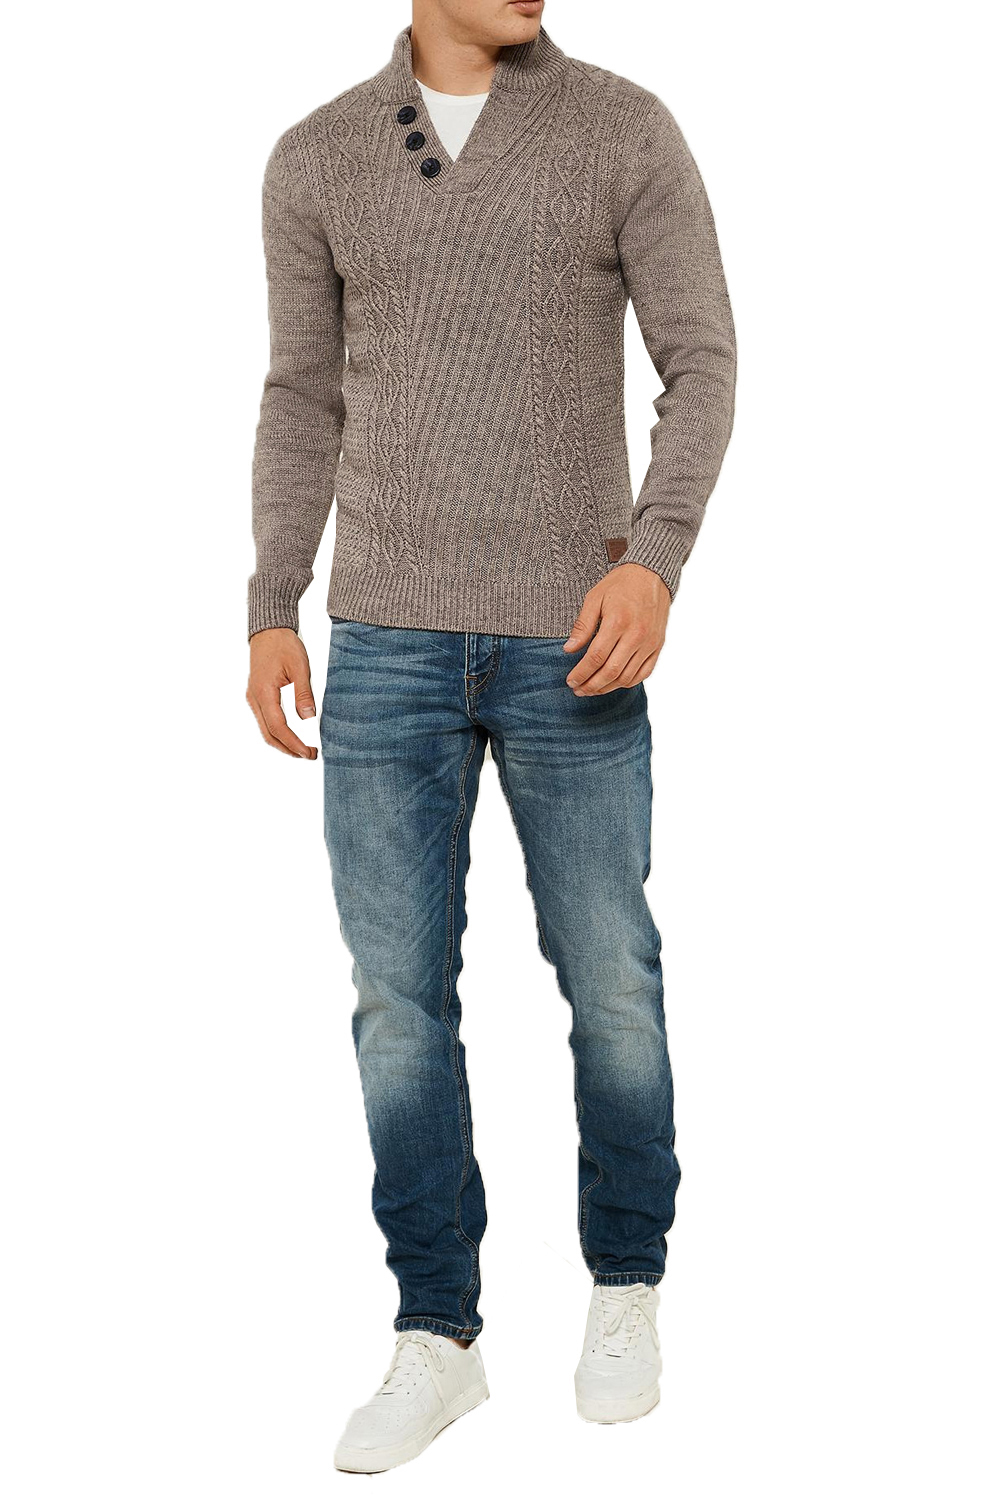 Threadbare-Wray-Mens-Top-Cable-Knited-Designer-Luxurious-Wool-Mix-Raglan-Jumpers thumbnail 22